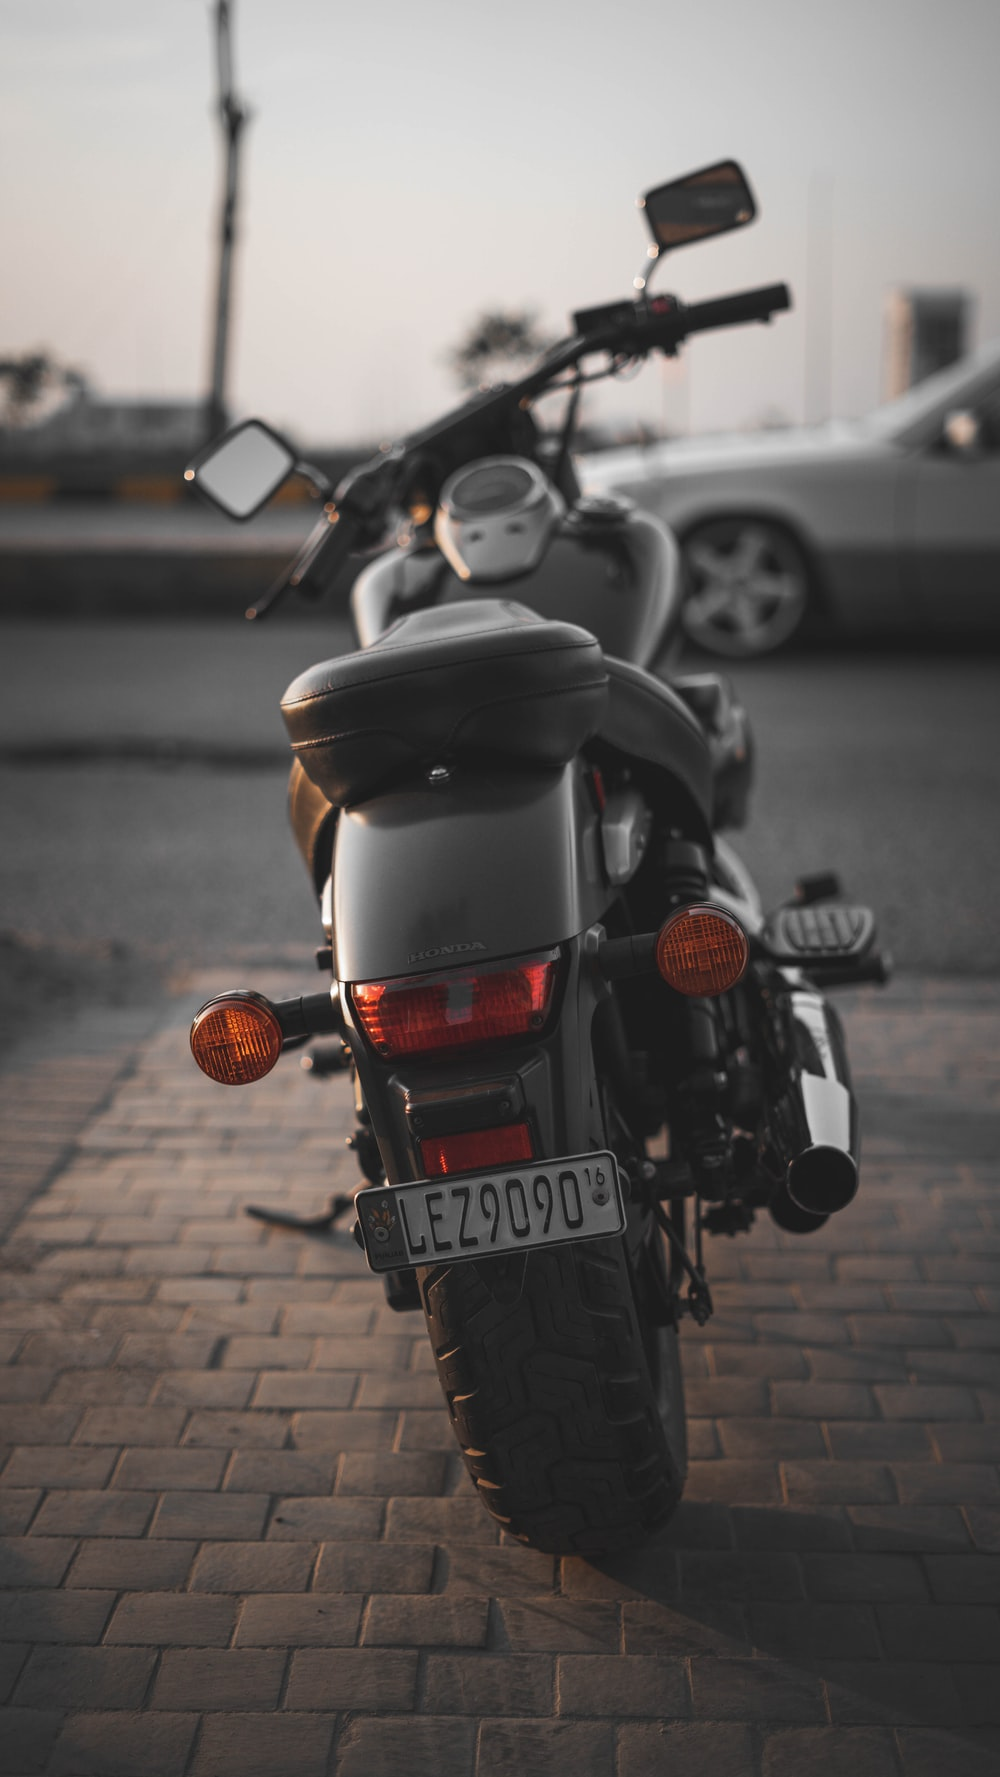 black and red motorcycle on road during daytime